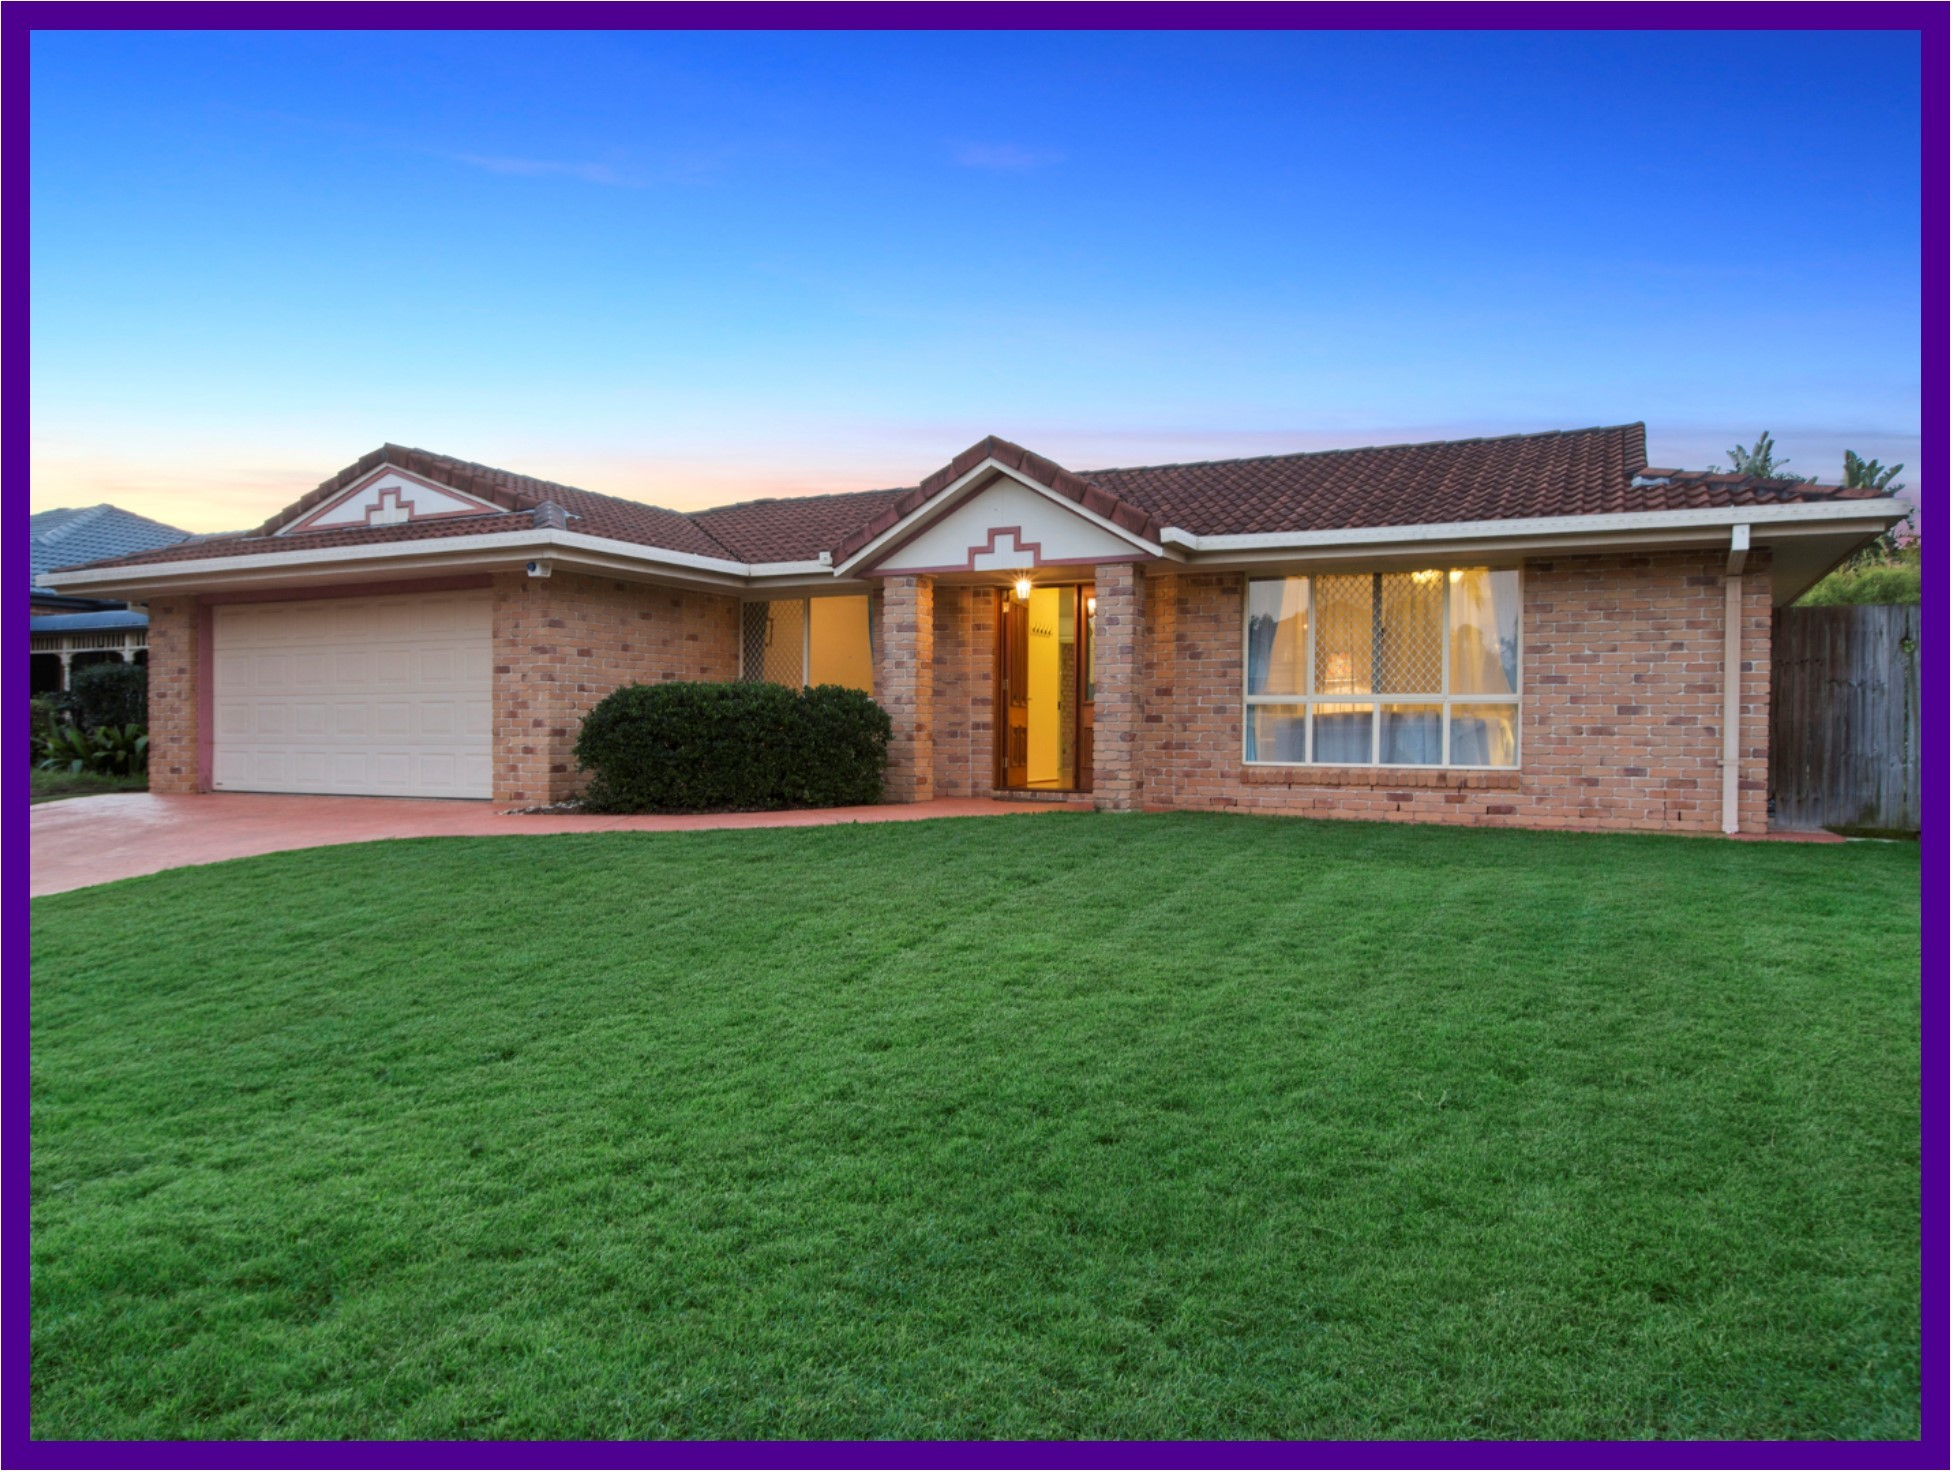 917m2 + An Immaculate Home Your Family Will Love